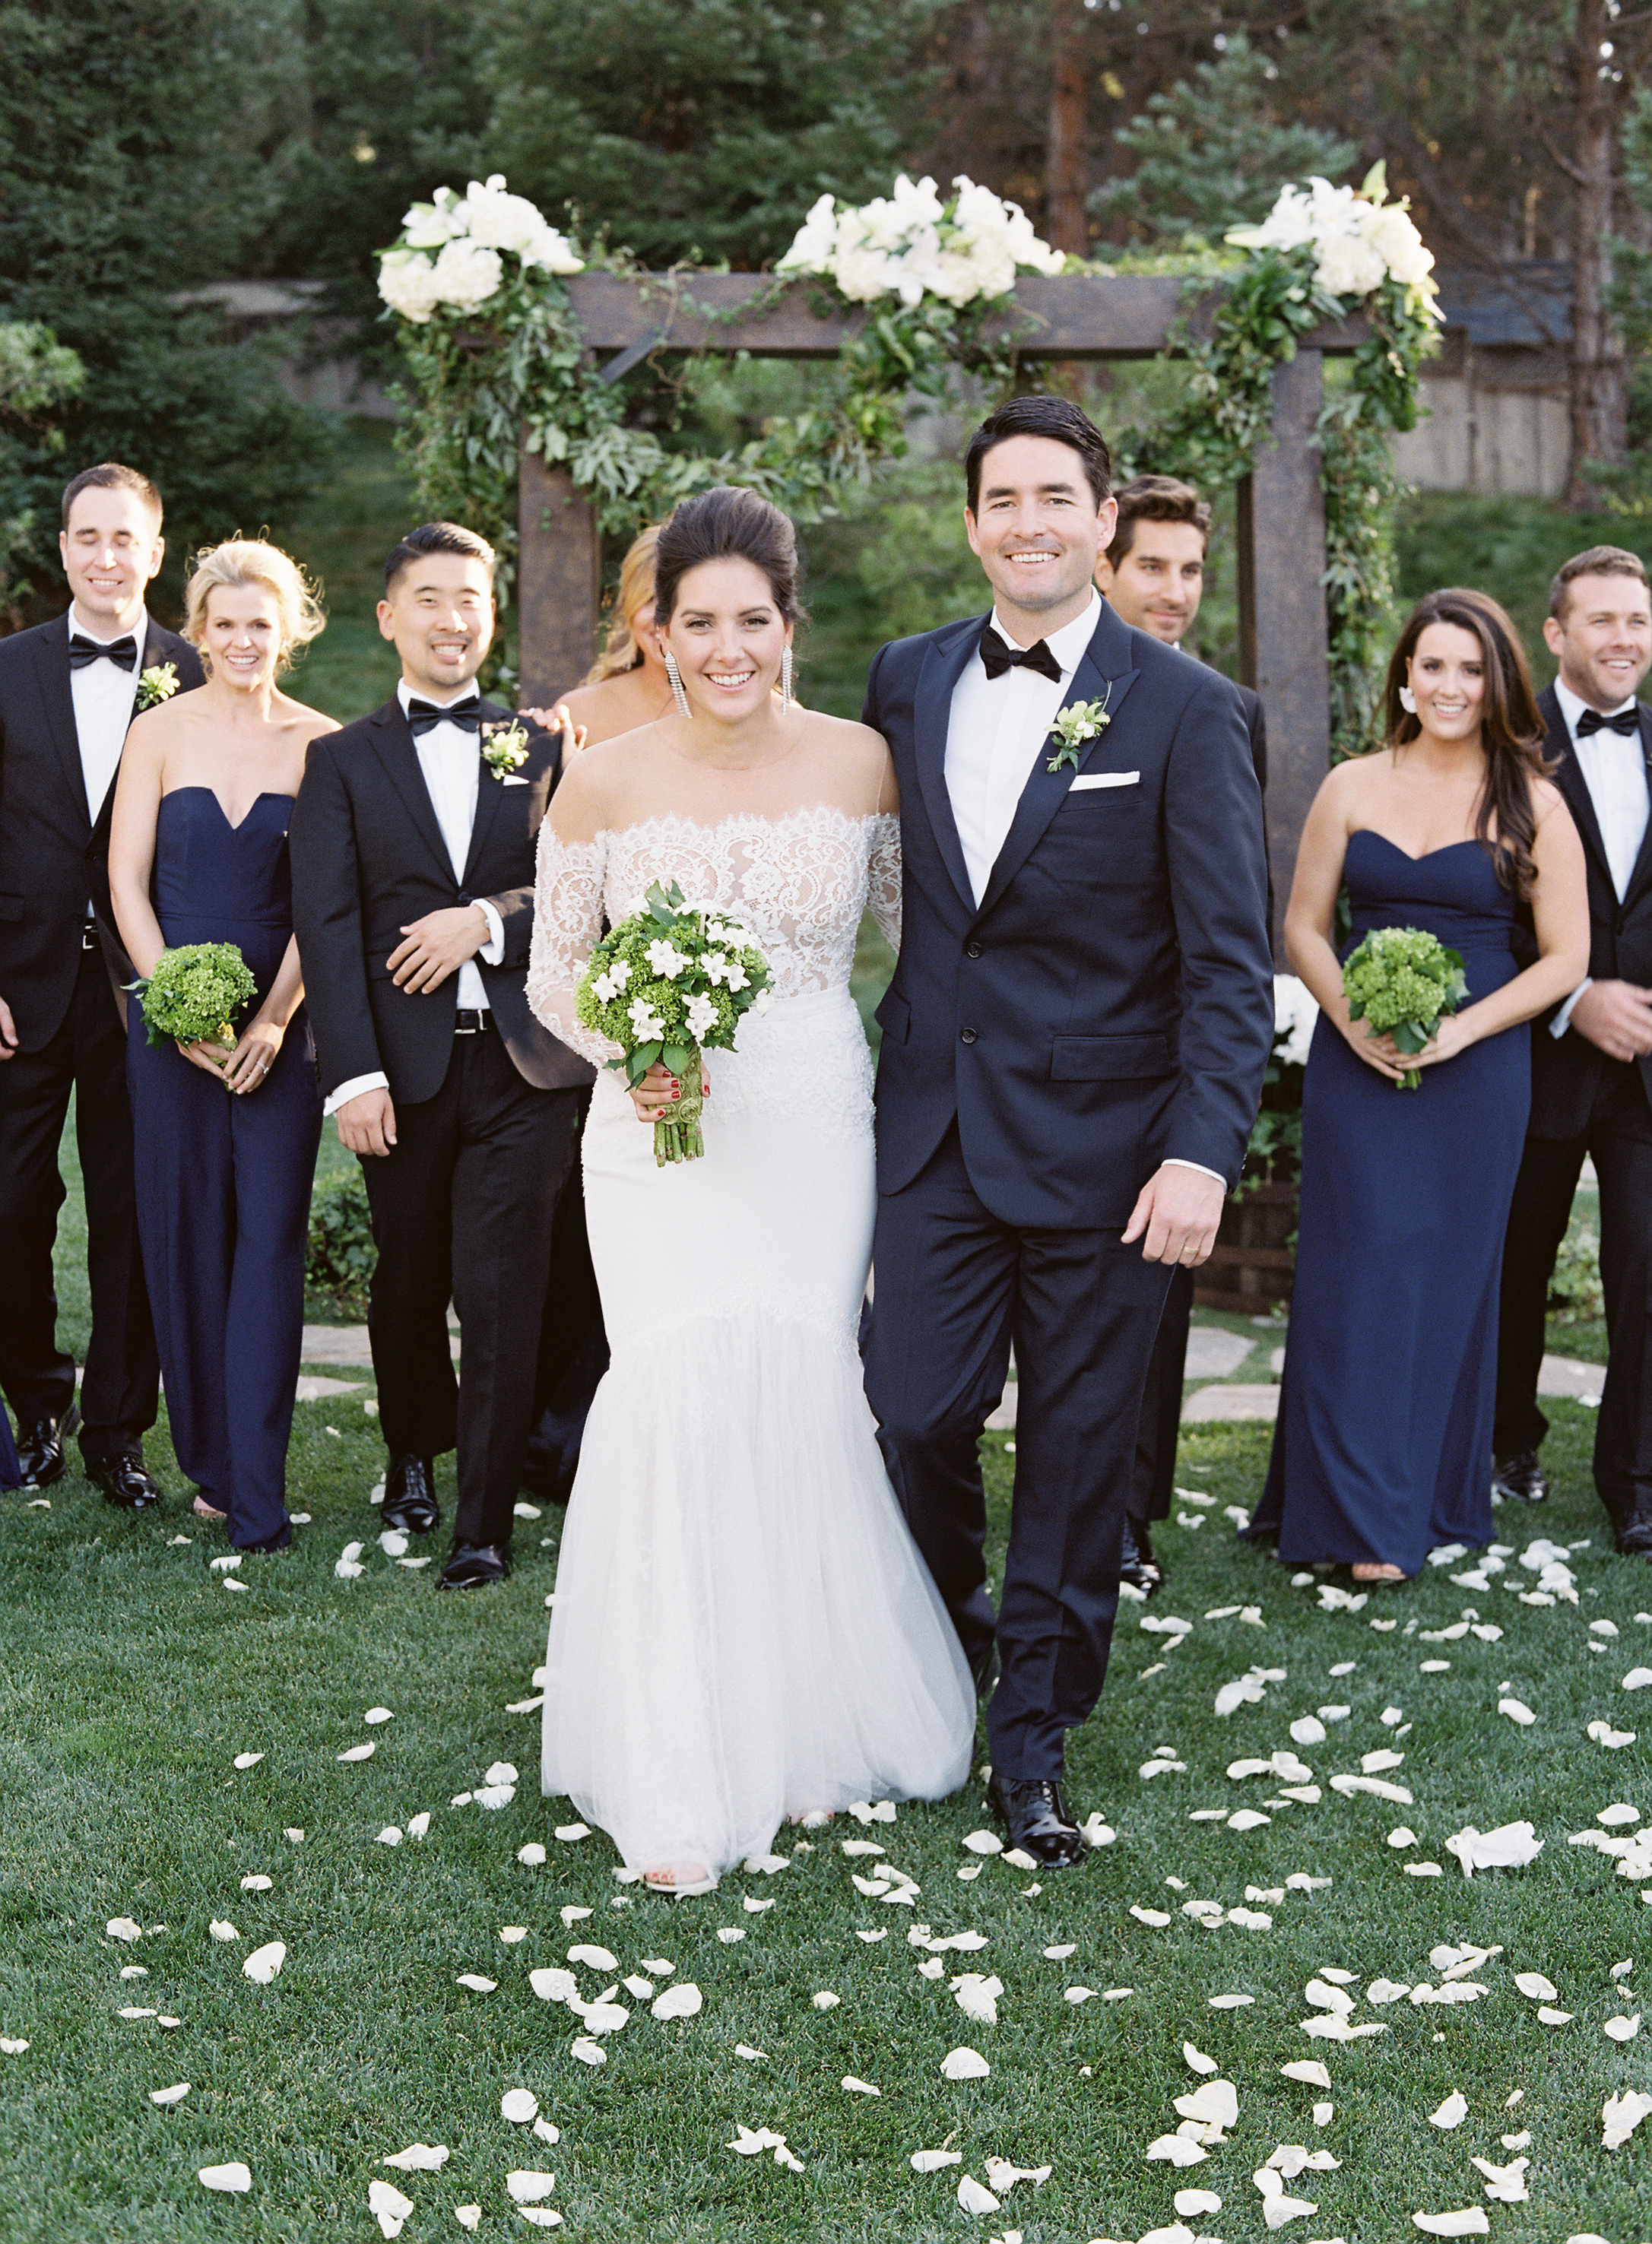 Meghan Mehan Photography - Carmel Valley Ranch Wedding 014.jpg